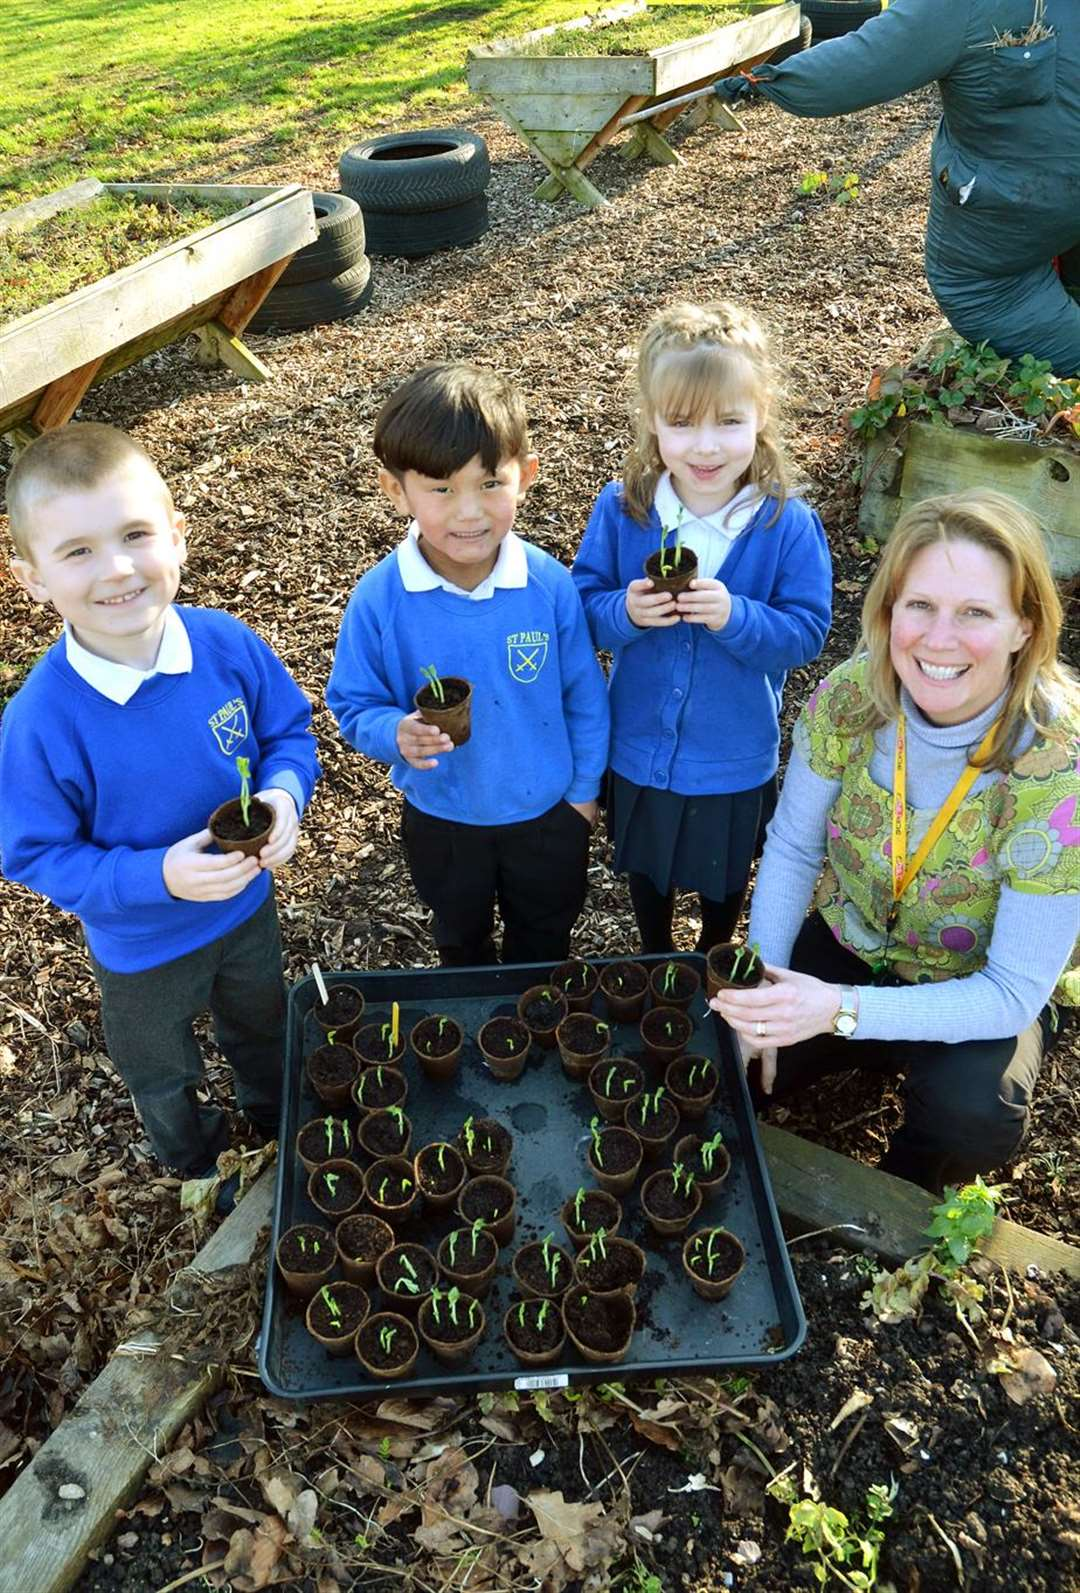 Reception teacher Catherine Wayland with Oskar, Danisa and Madalena, who are holding peas they've grown. (150219-19)